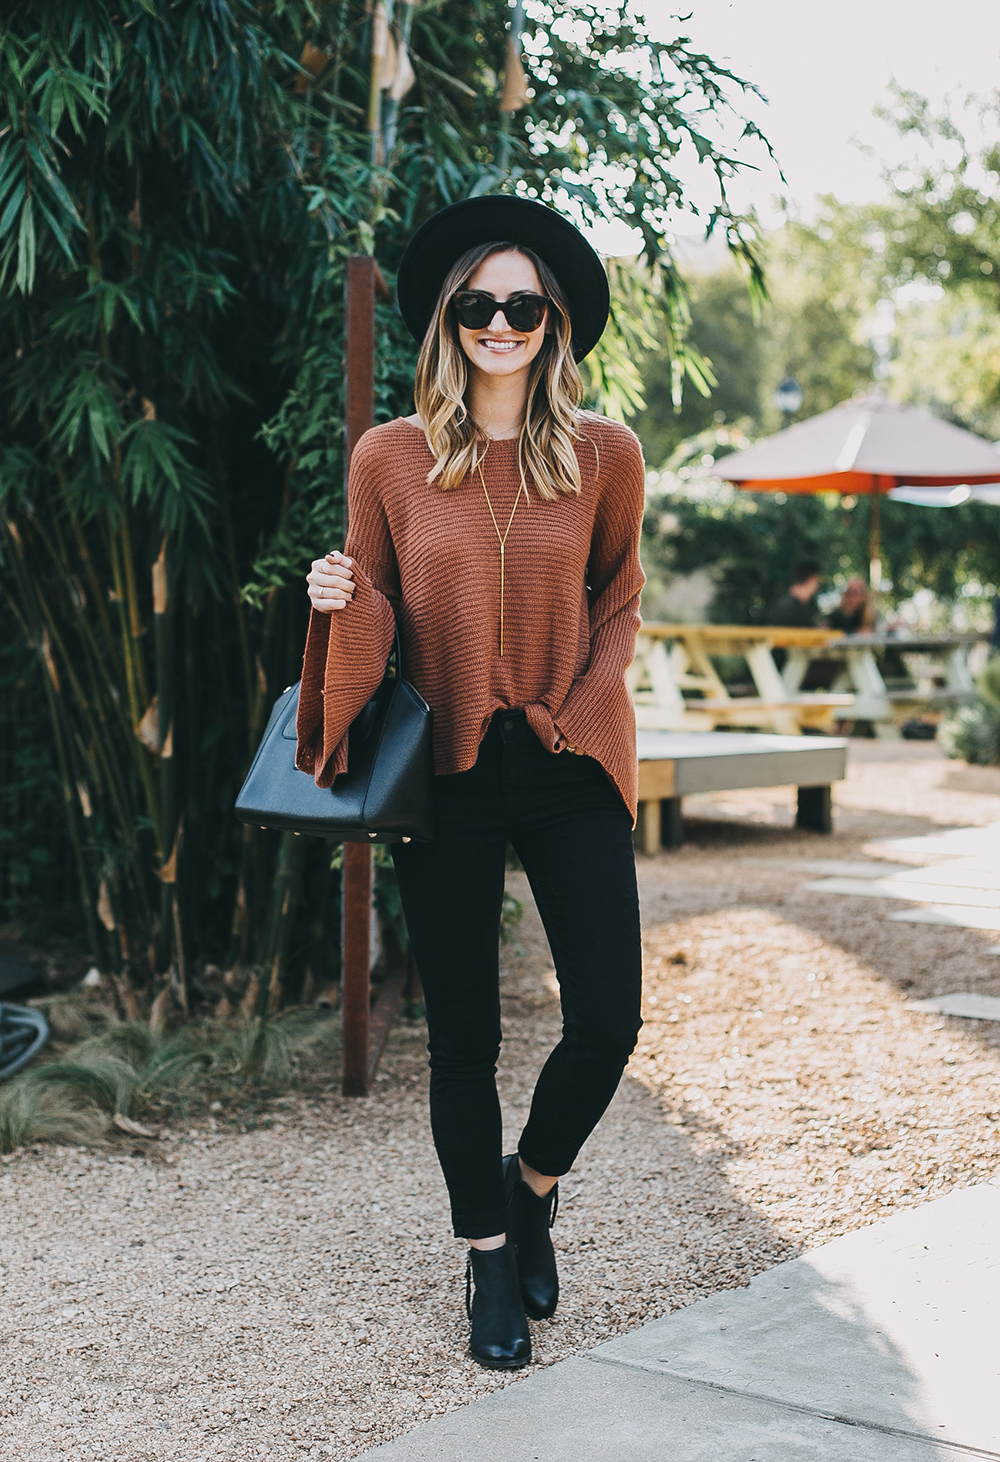 livvyland-blog-olivia-watson-austin-texas-fashion-lifestyle-blogger-fall-orange-slouchy-sweater-black-skinny-jeans-outfit-boho-fall-idea-6